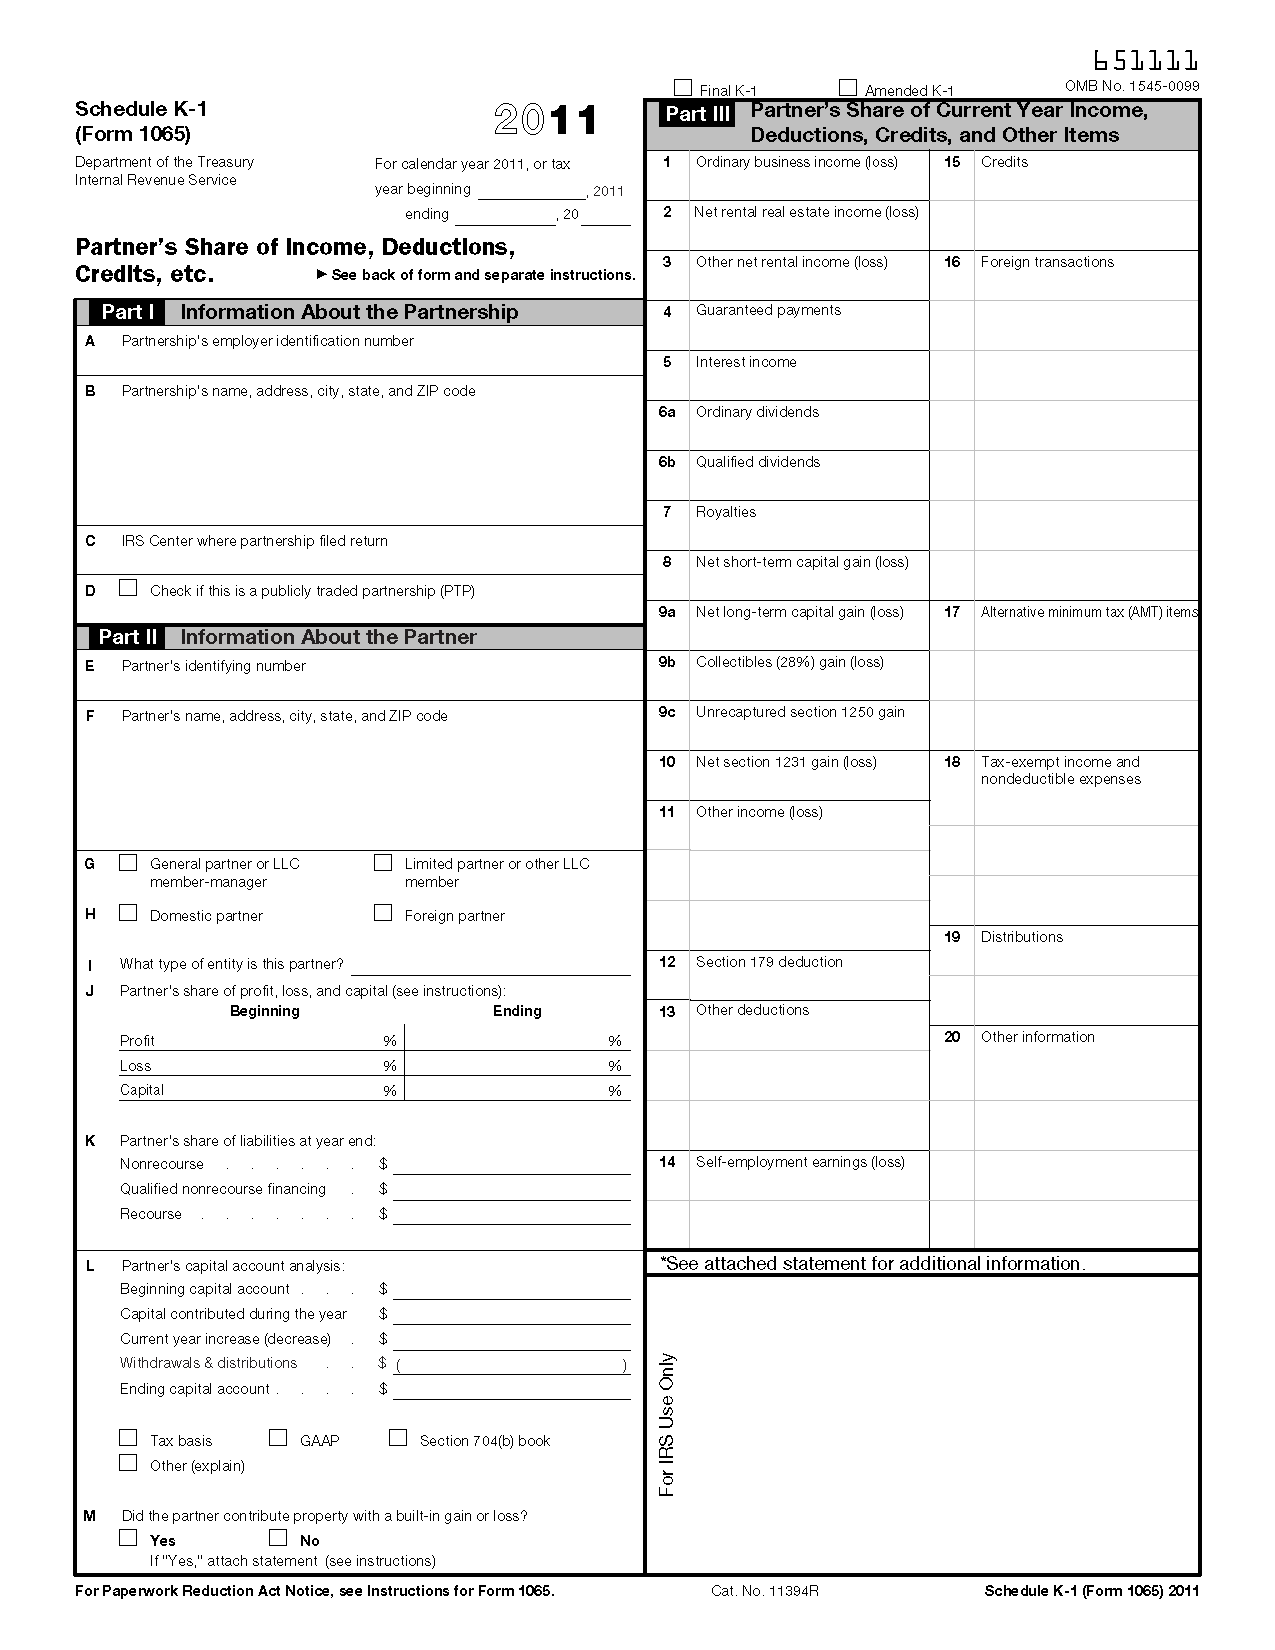 Schedule k 1 form 1065 instructions 2013 form: resume examples.